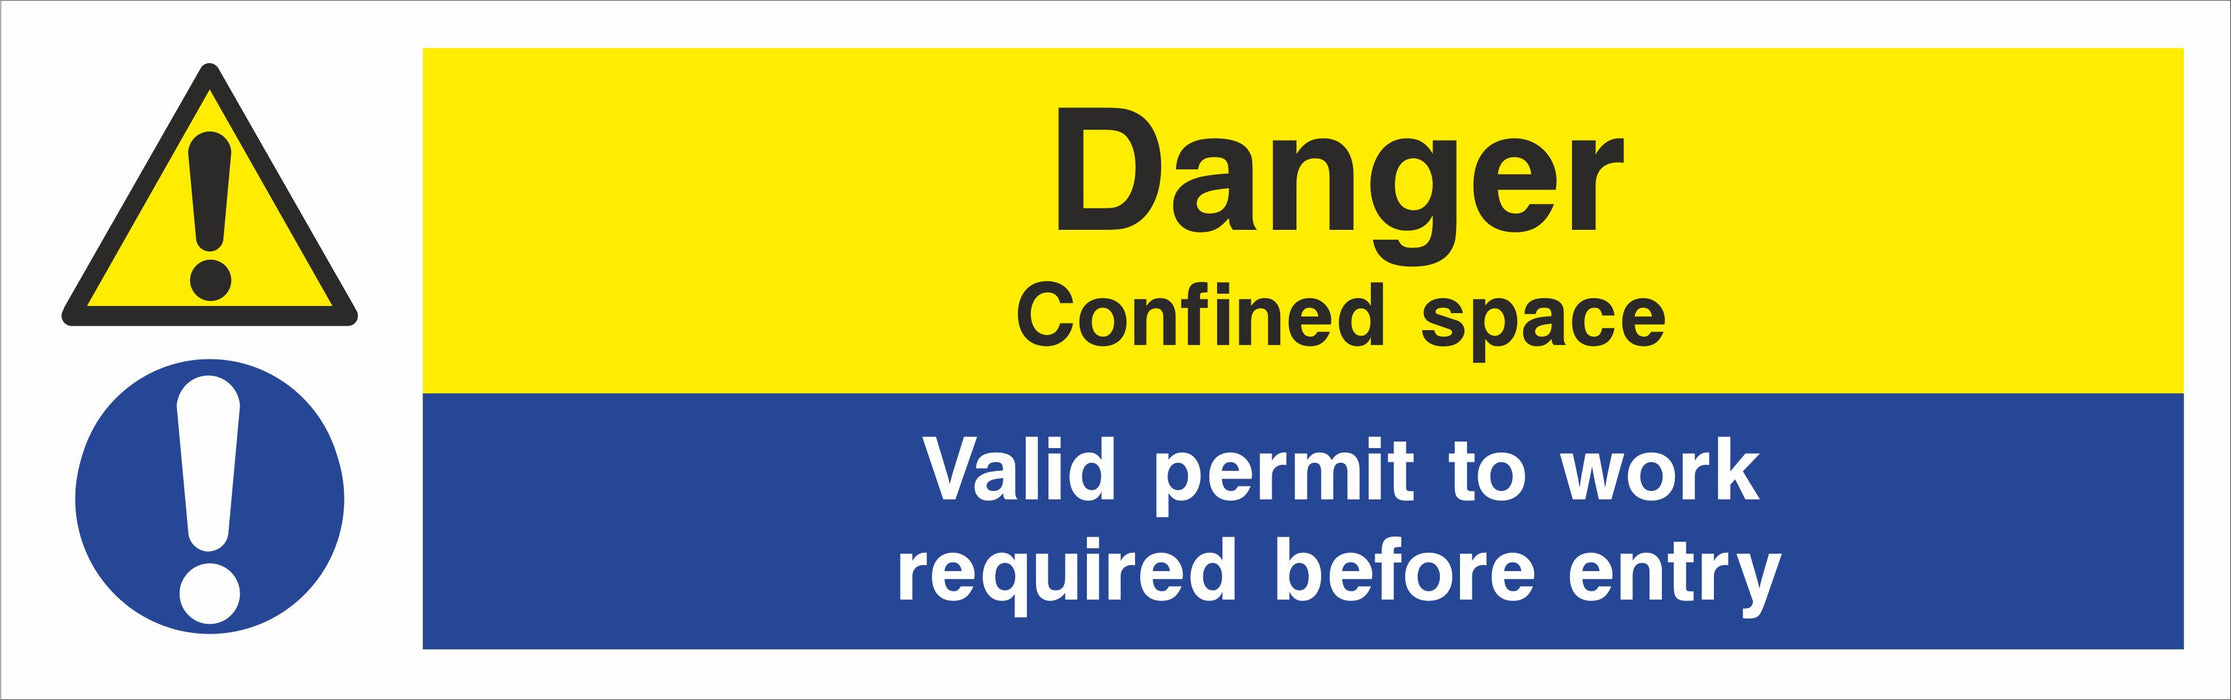 Danger Confined space Valid permit to work required before entry